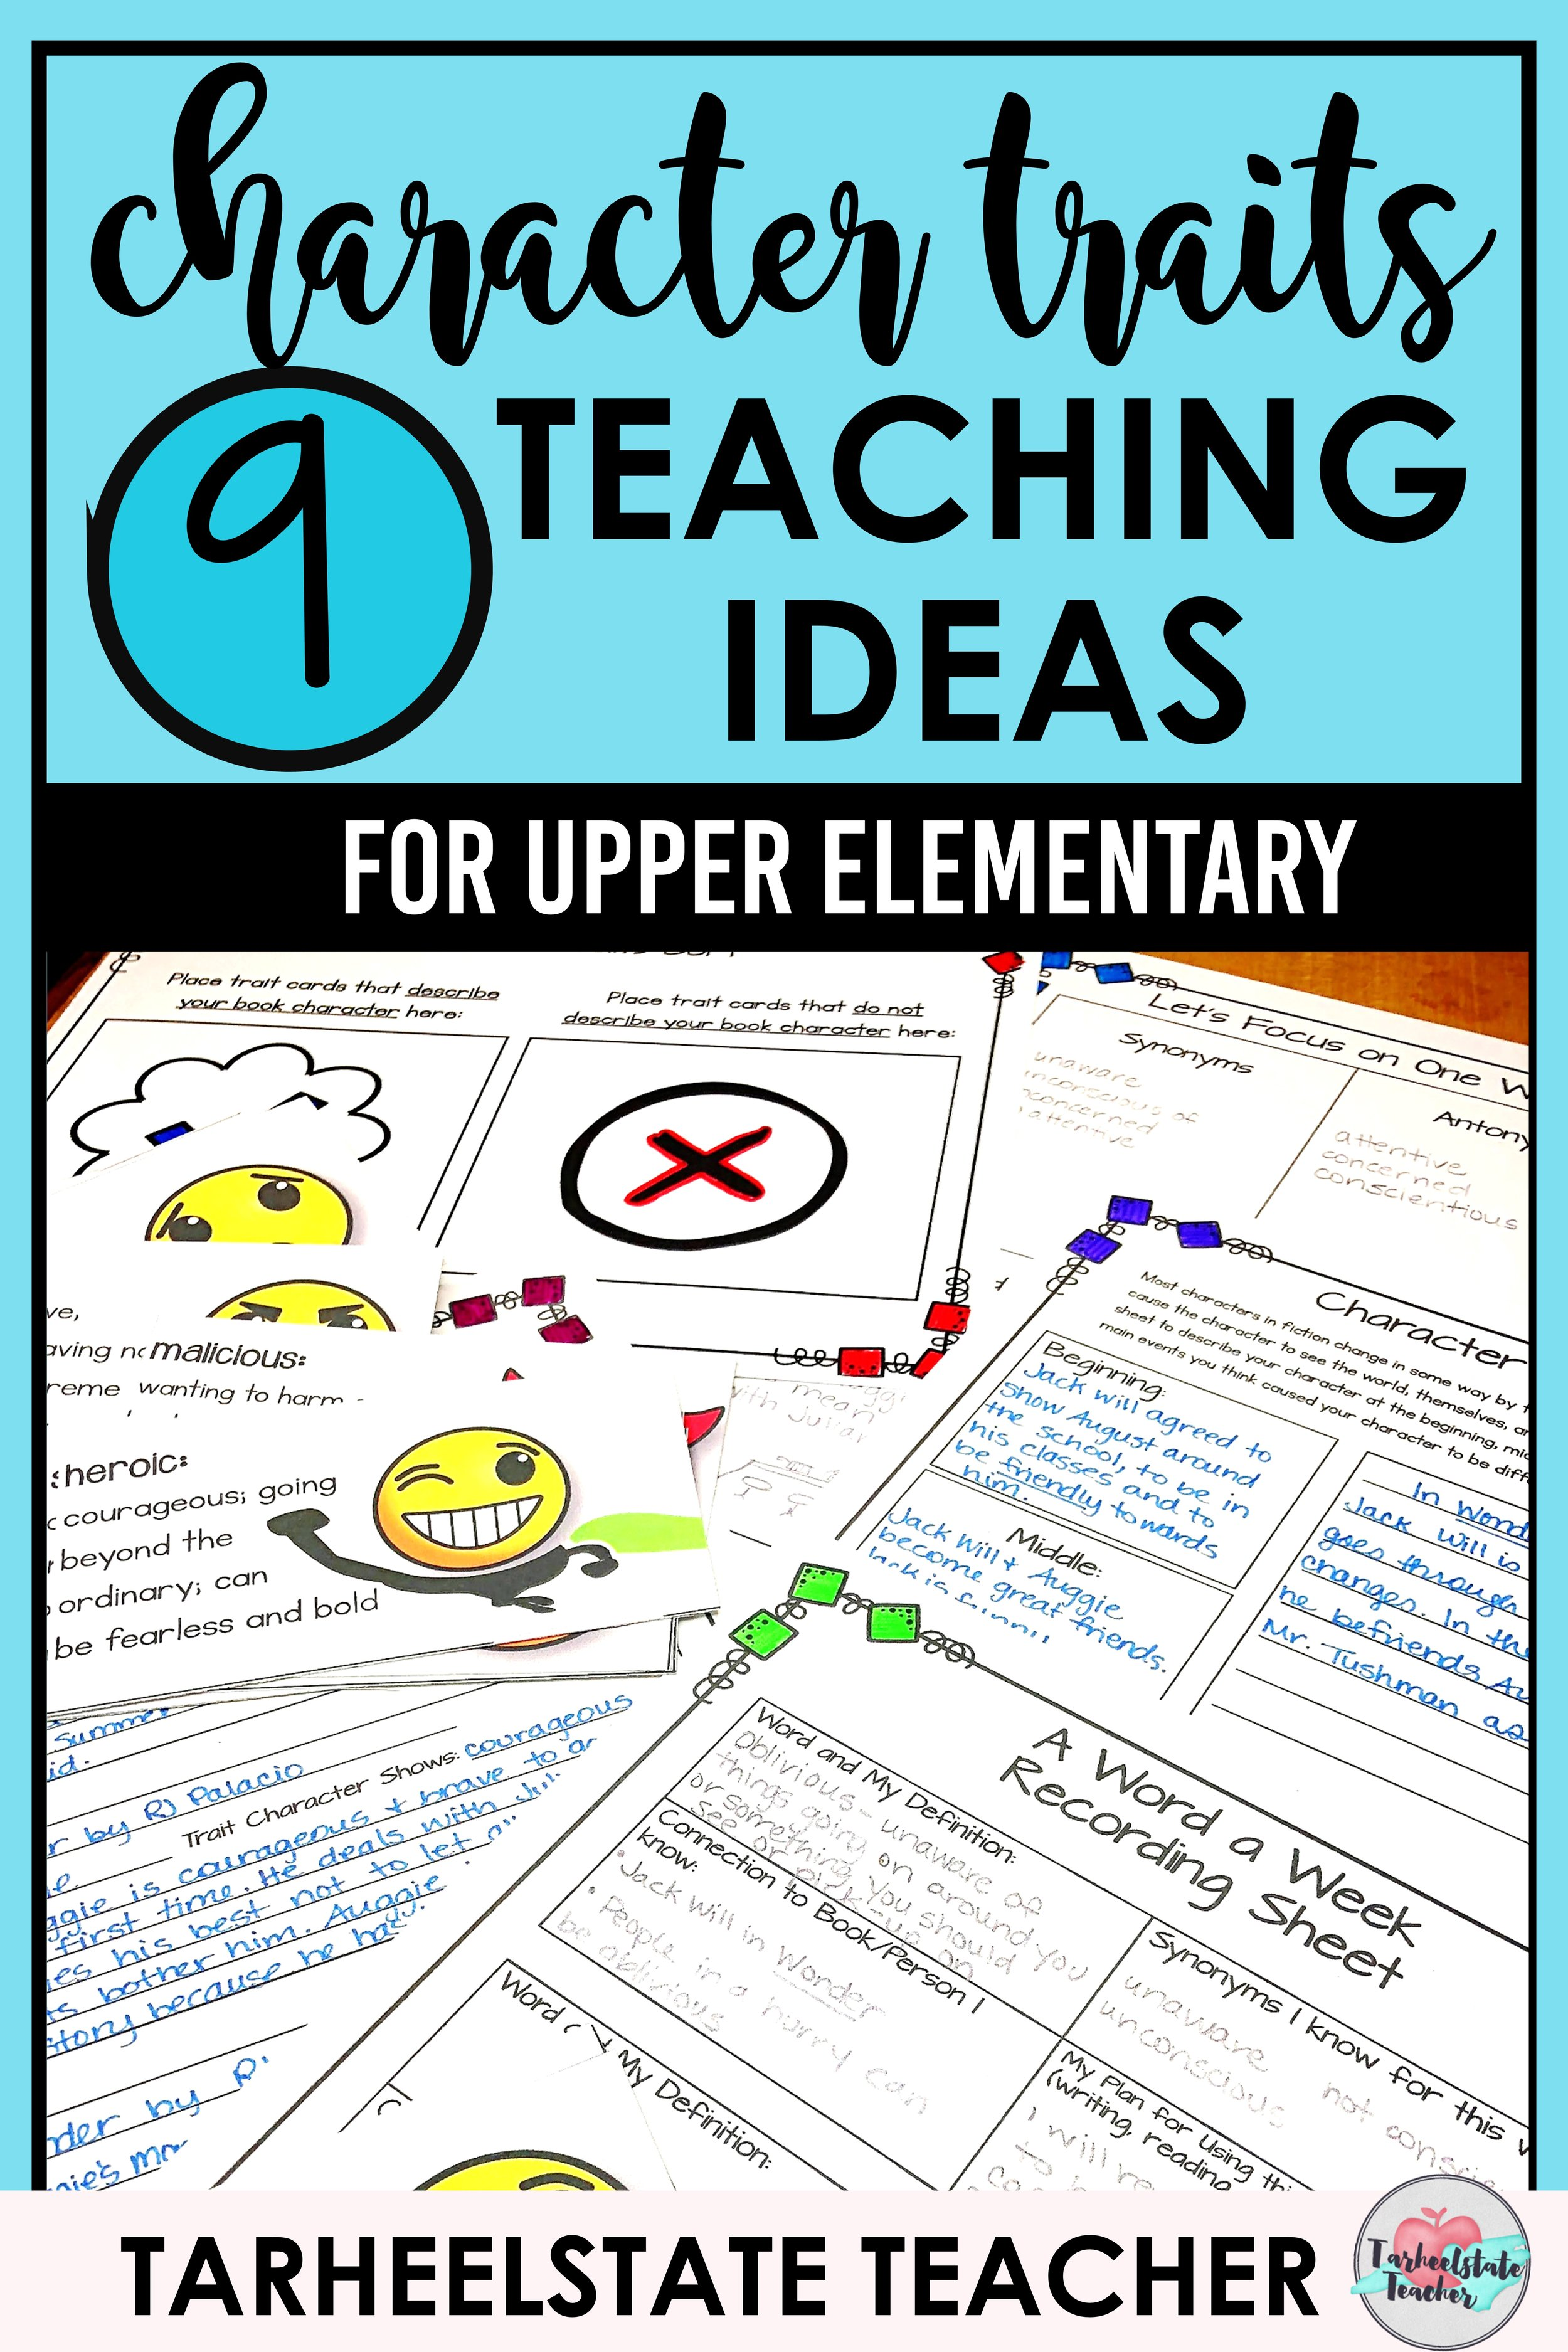 lesson ideas graphic organizers for teaching character traits.JPG